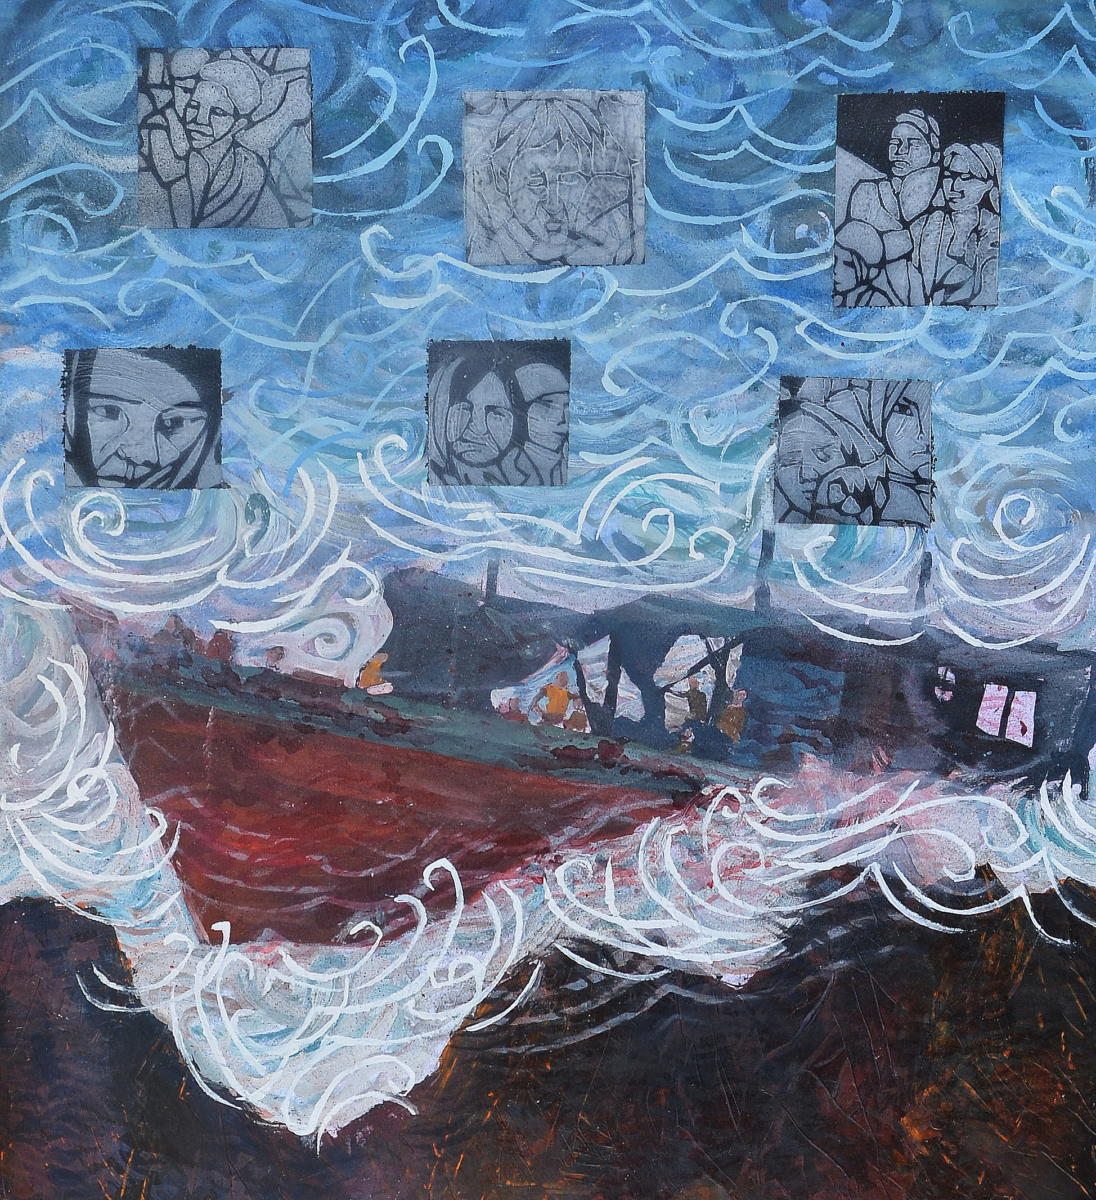 In this painting a boat drifts towards a rocky coast, silhouettes of people can be seen on board. Peoples' faces are inserted into six squares above the boat, which are juxtaposed above waves in the background.